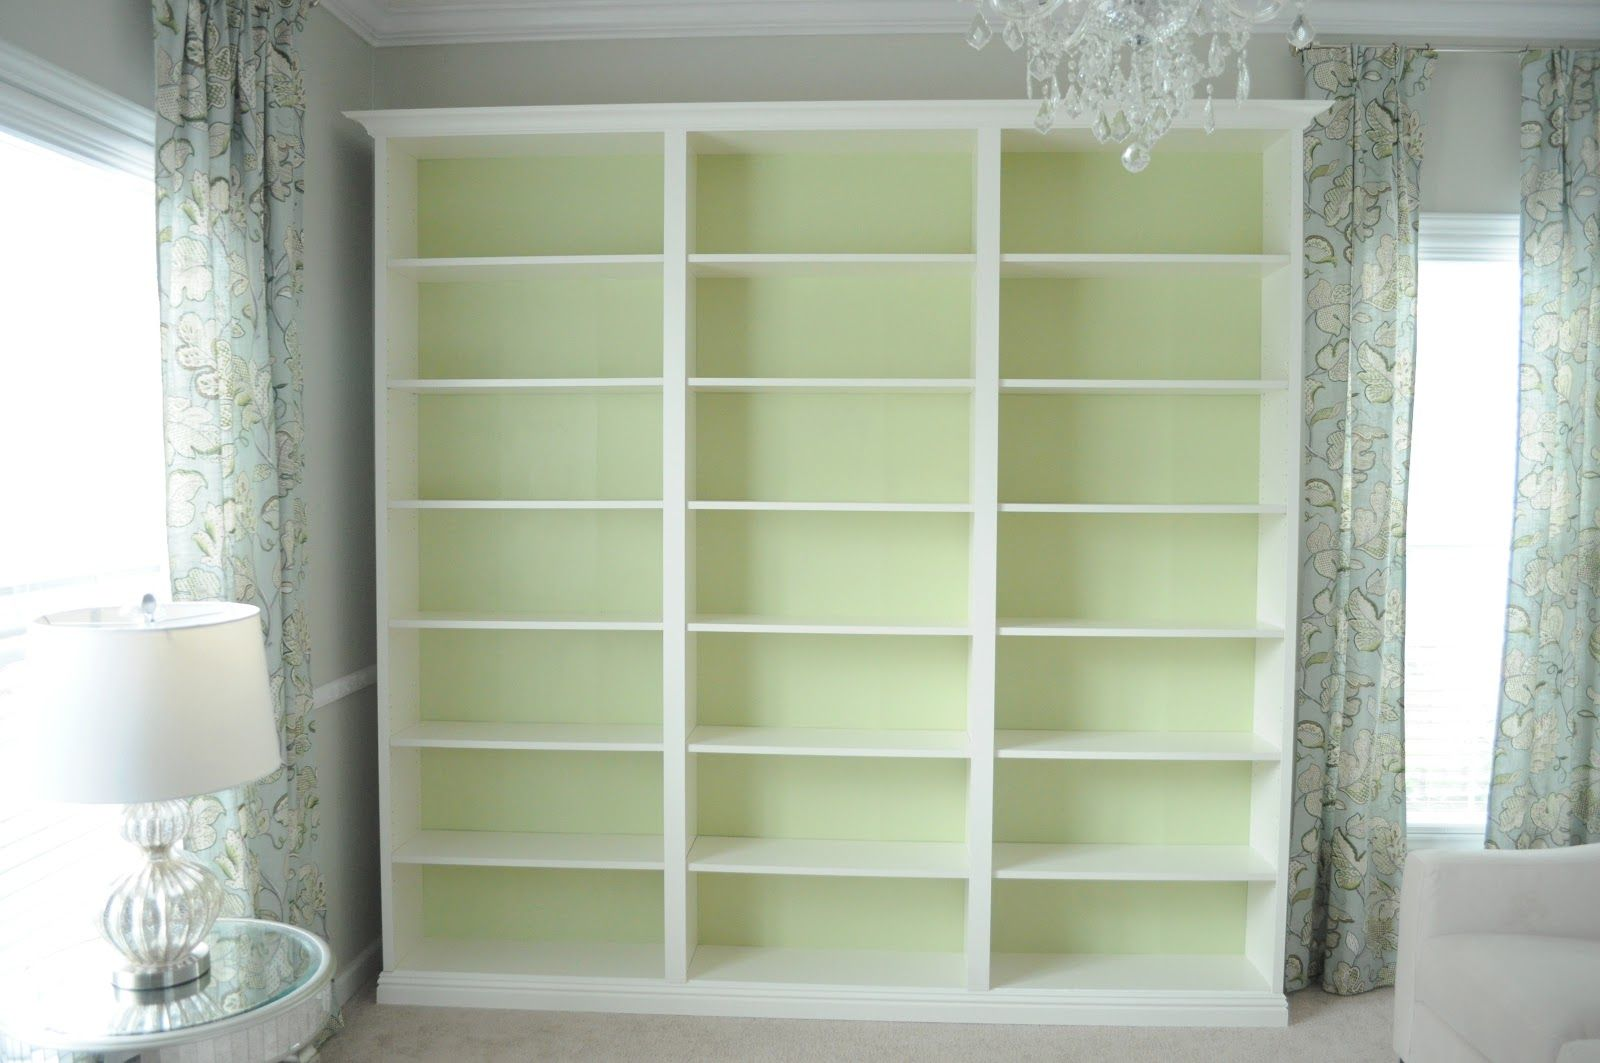 How To Make Ikea Billy Bookshelves Look Like Custom Built In Diy Baseboards Crown Molding Painted Backs